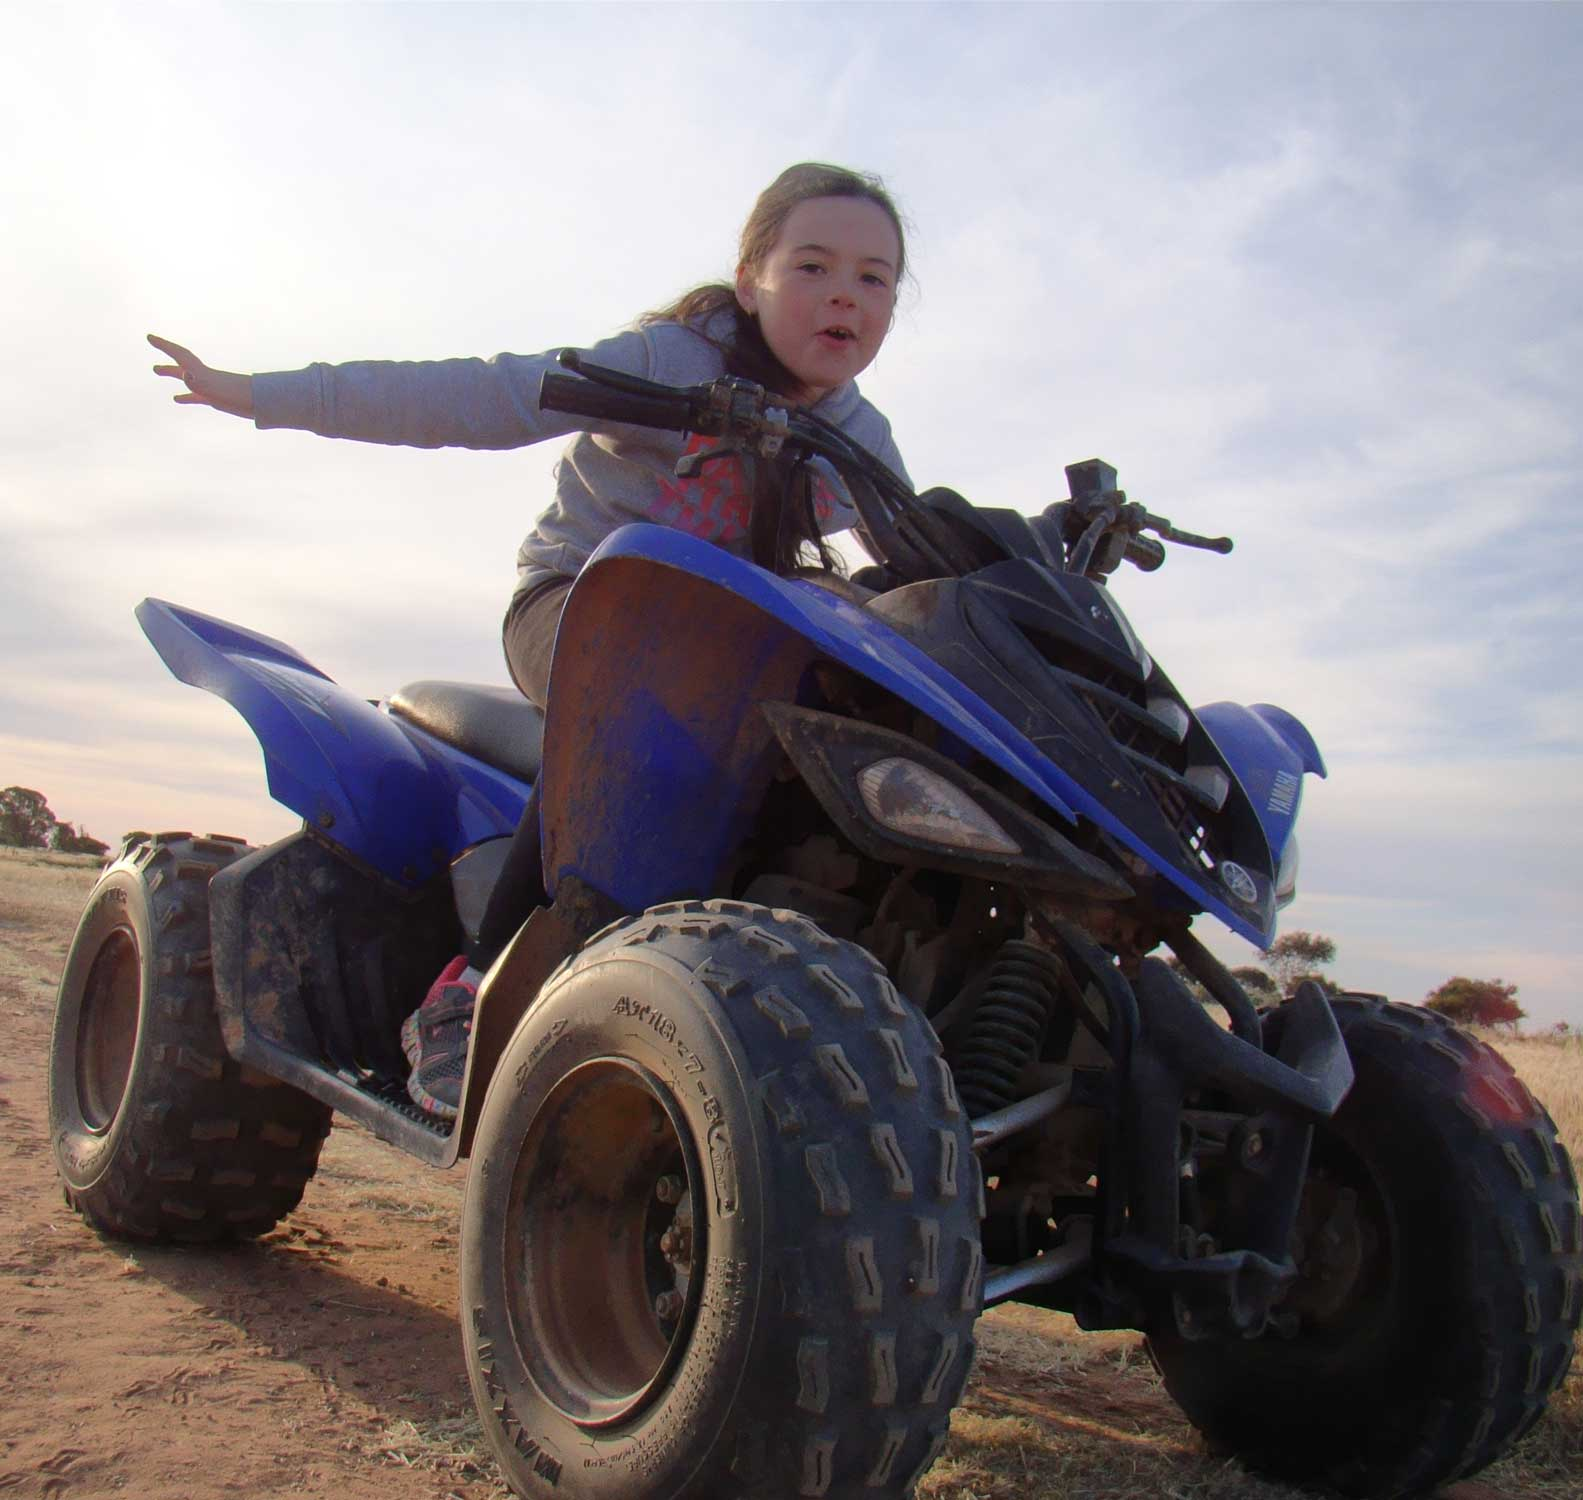 Tookii things to do with kids riding a motorbike one of the outdoor activities for kids